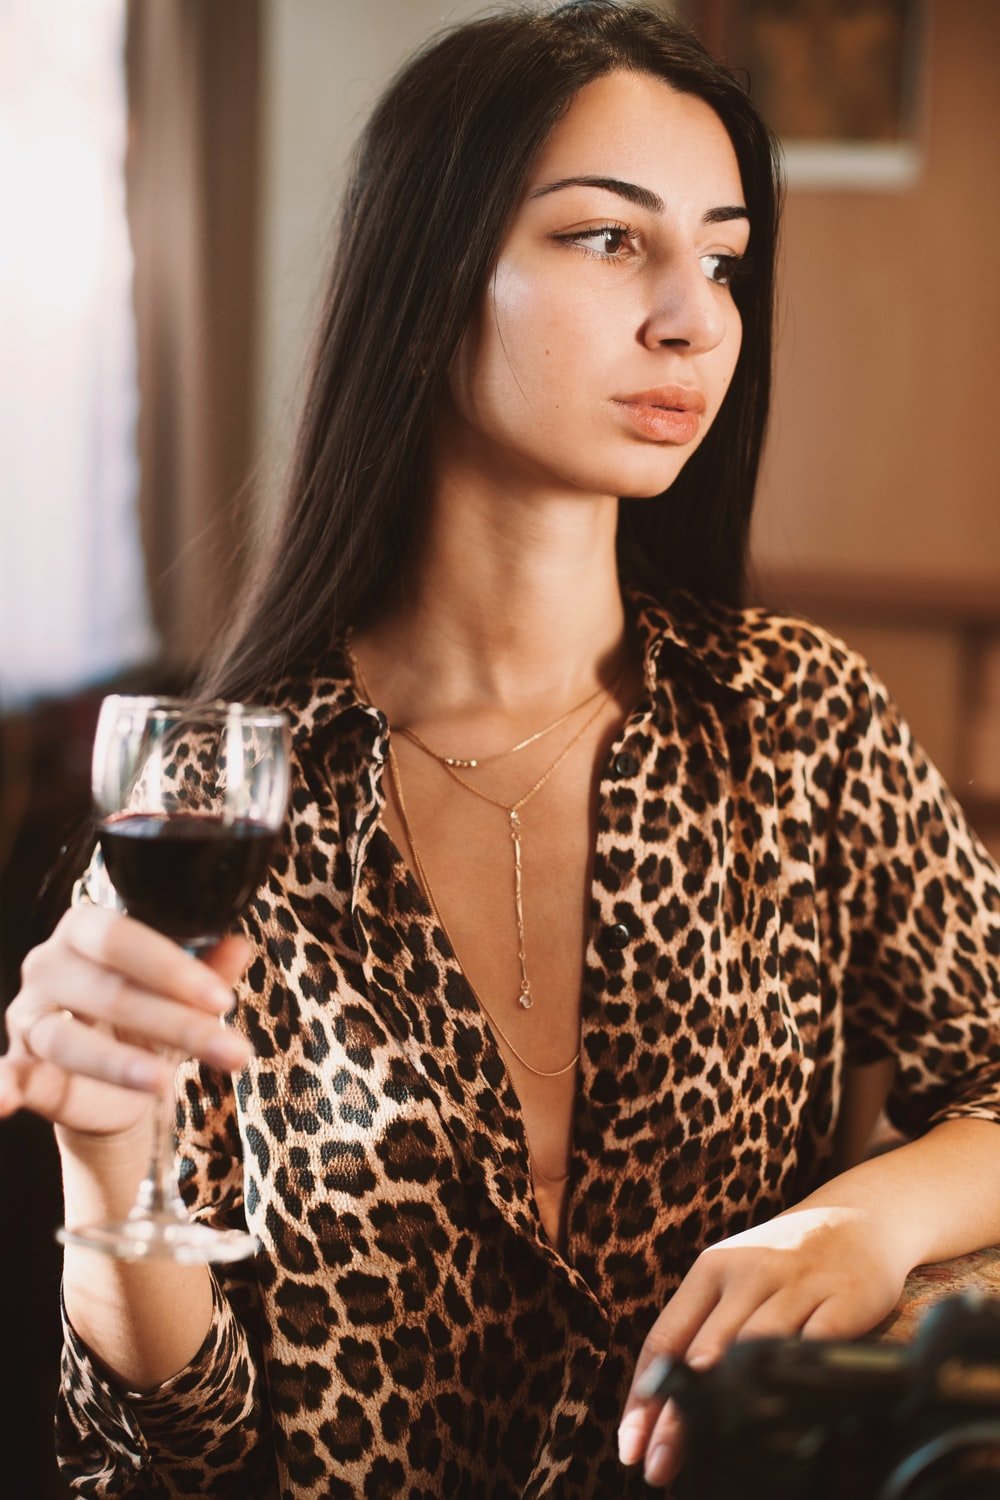 woman in brown and black leopard print long sleeve shirt holding clear wine glass